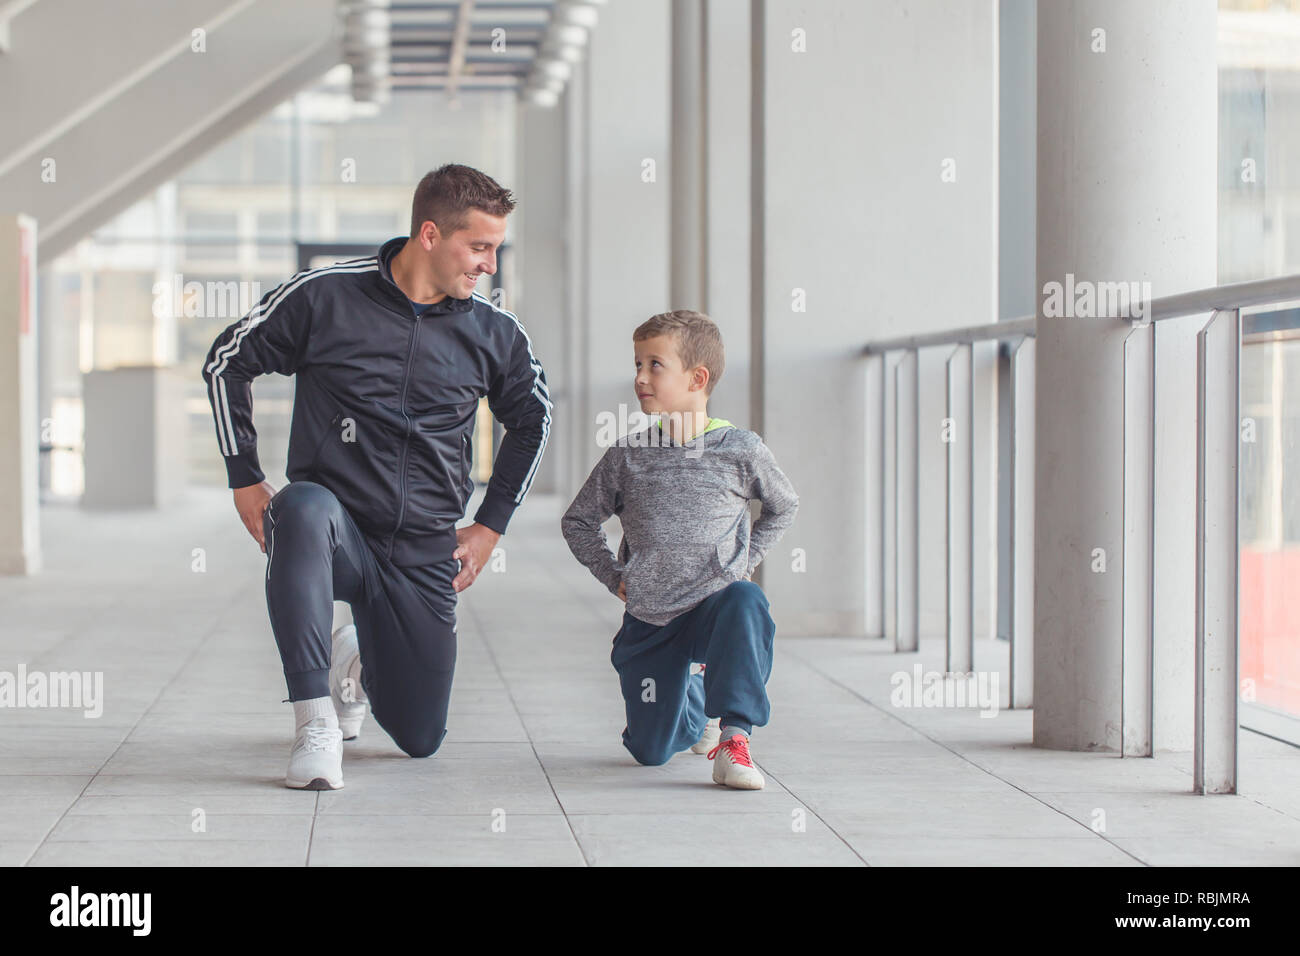 Little boy and his father doing stretching legs exercises  together at a sports center. Father and son spend time together and lead a healthy lifestyl - Stock Image